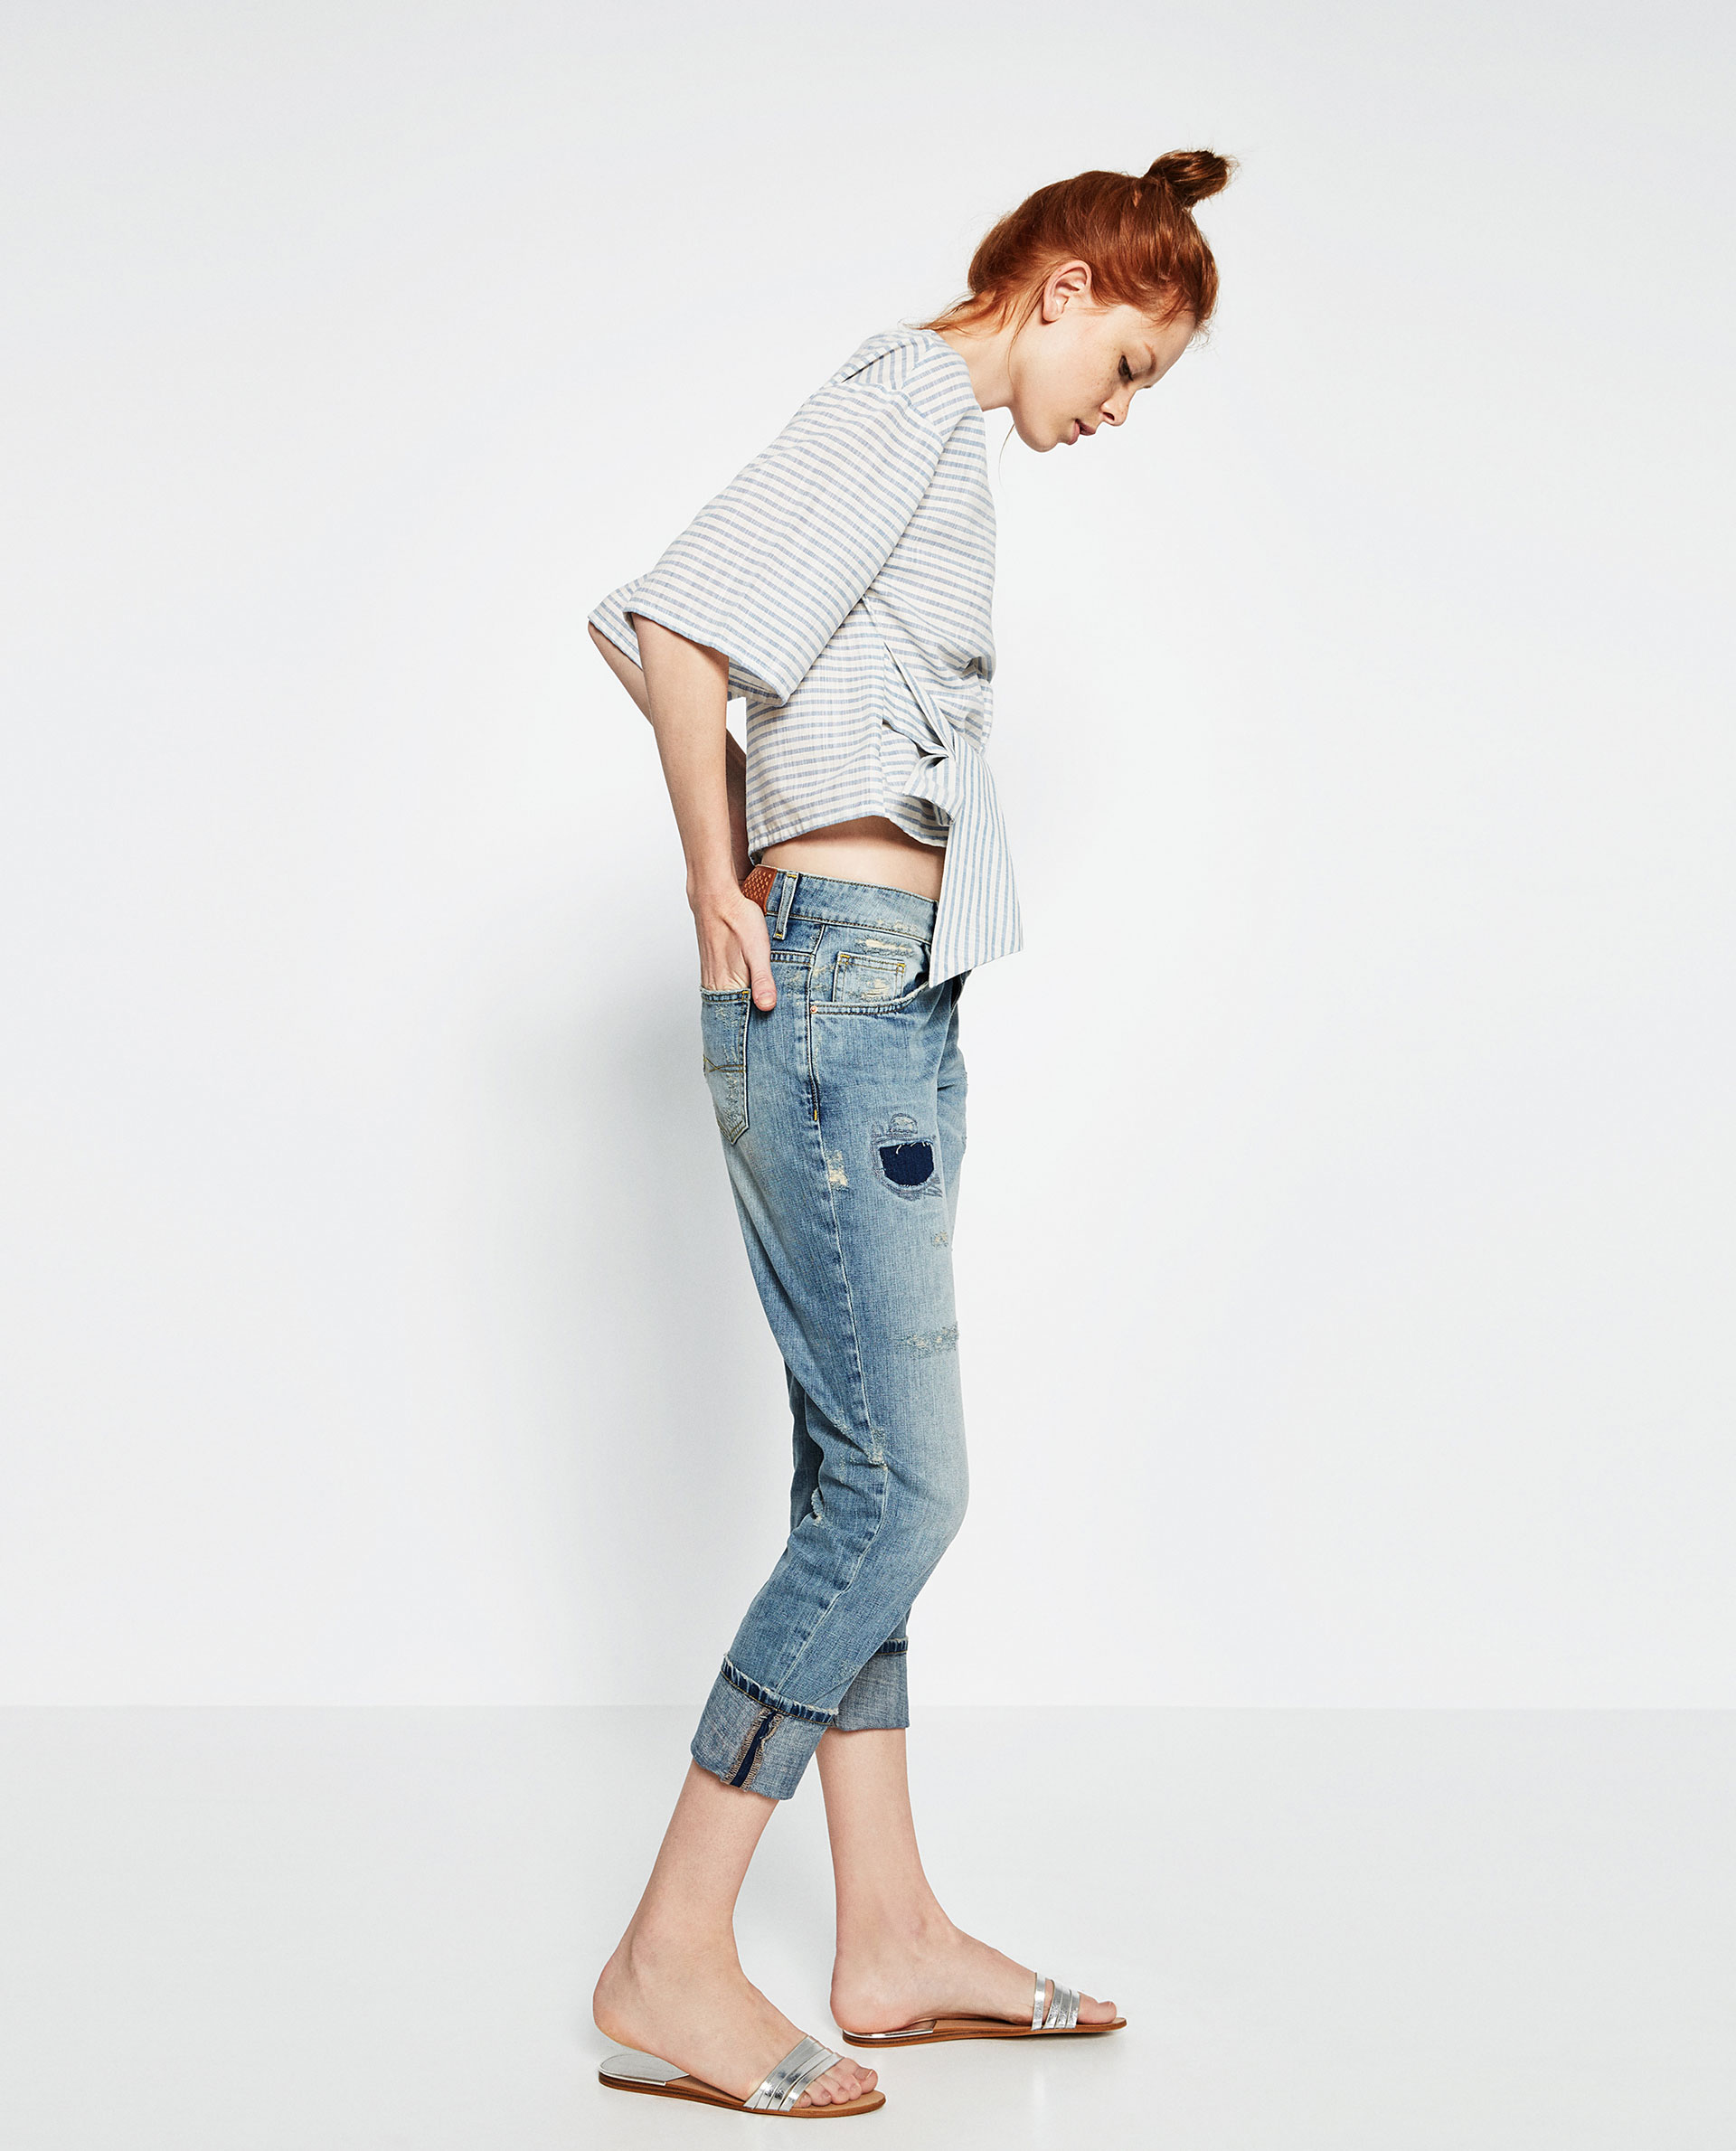 zara, cuffed jeans, styling tips